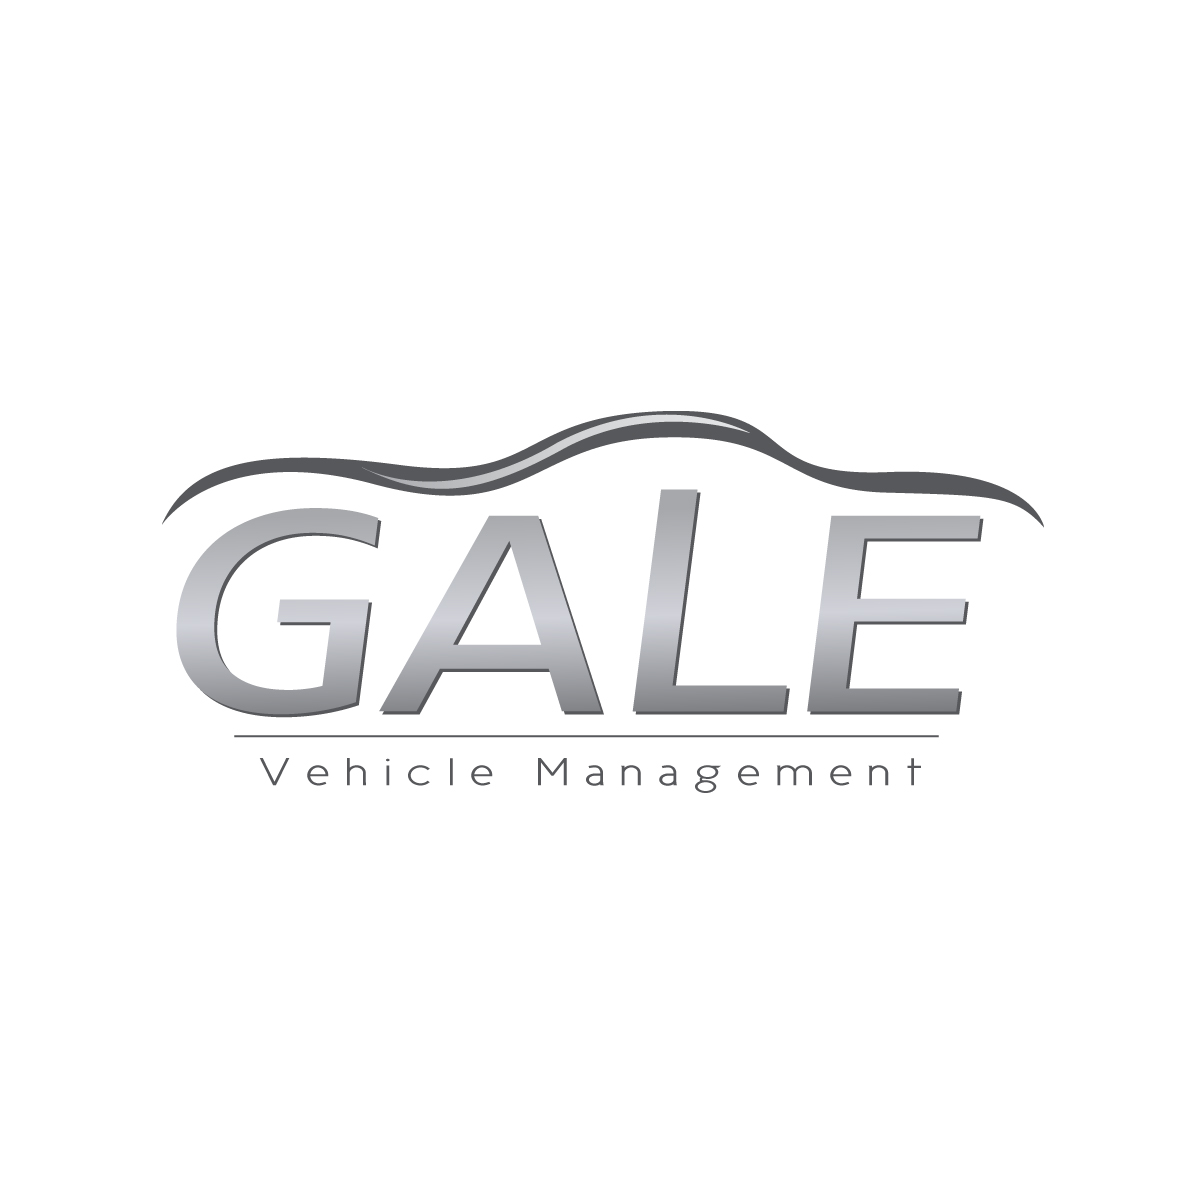 Logo Design by Diane Dunbrack - Entry No. 10 in the Logo Design Contest Artistic Logo Design for Gale Vehicle Management.